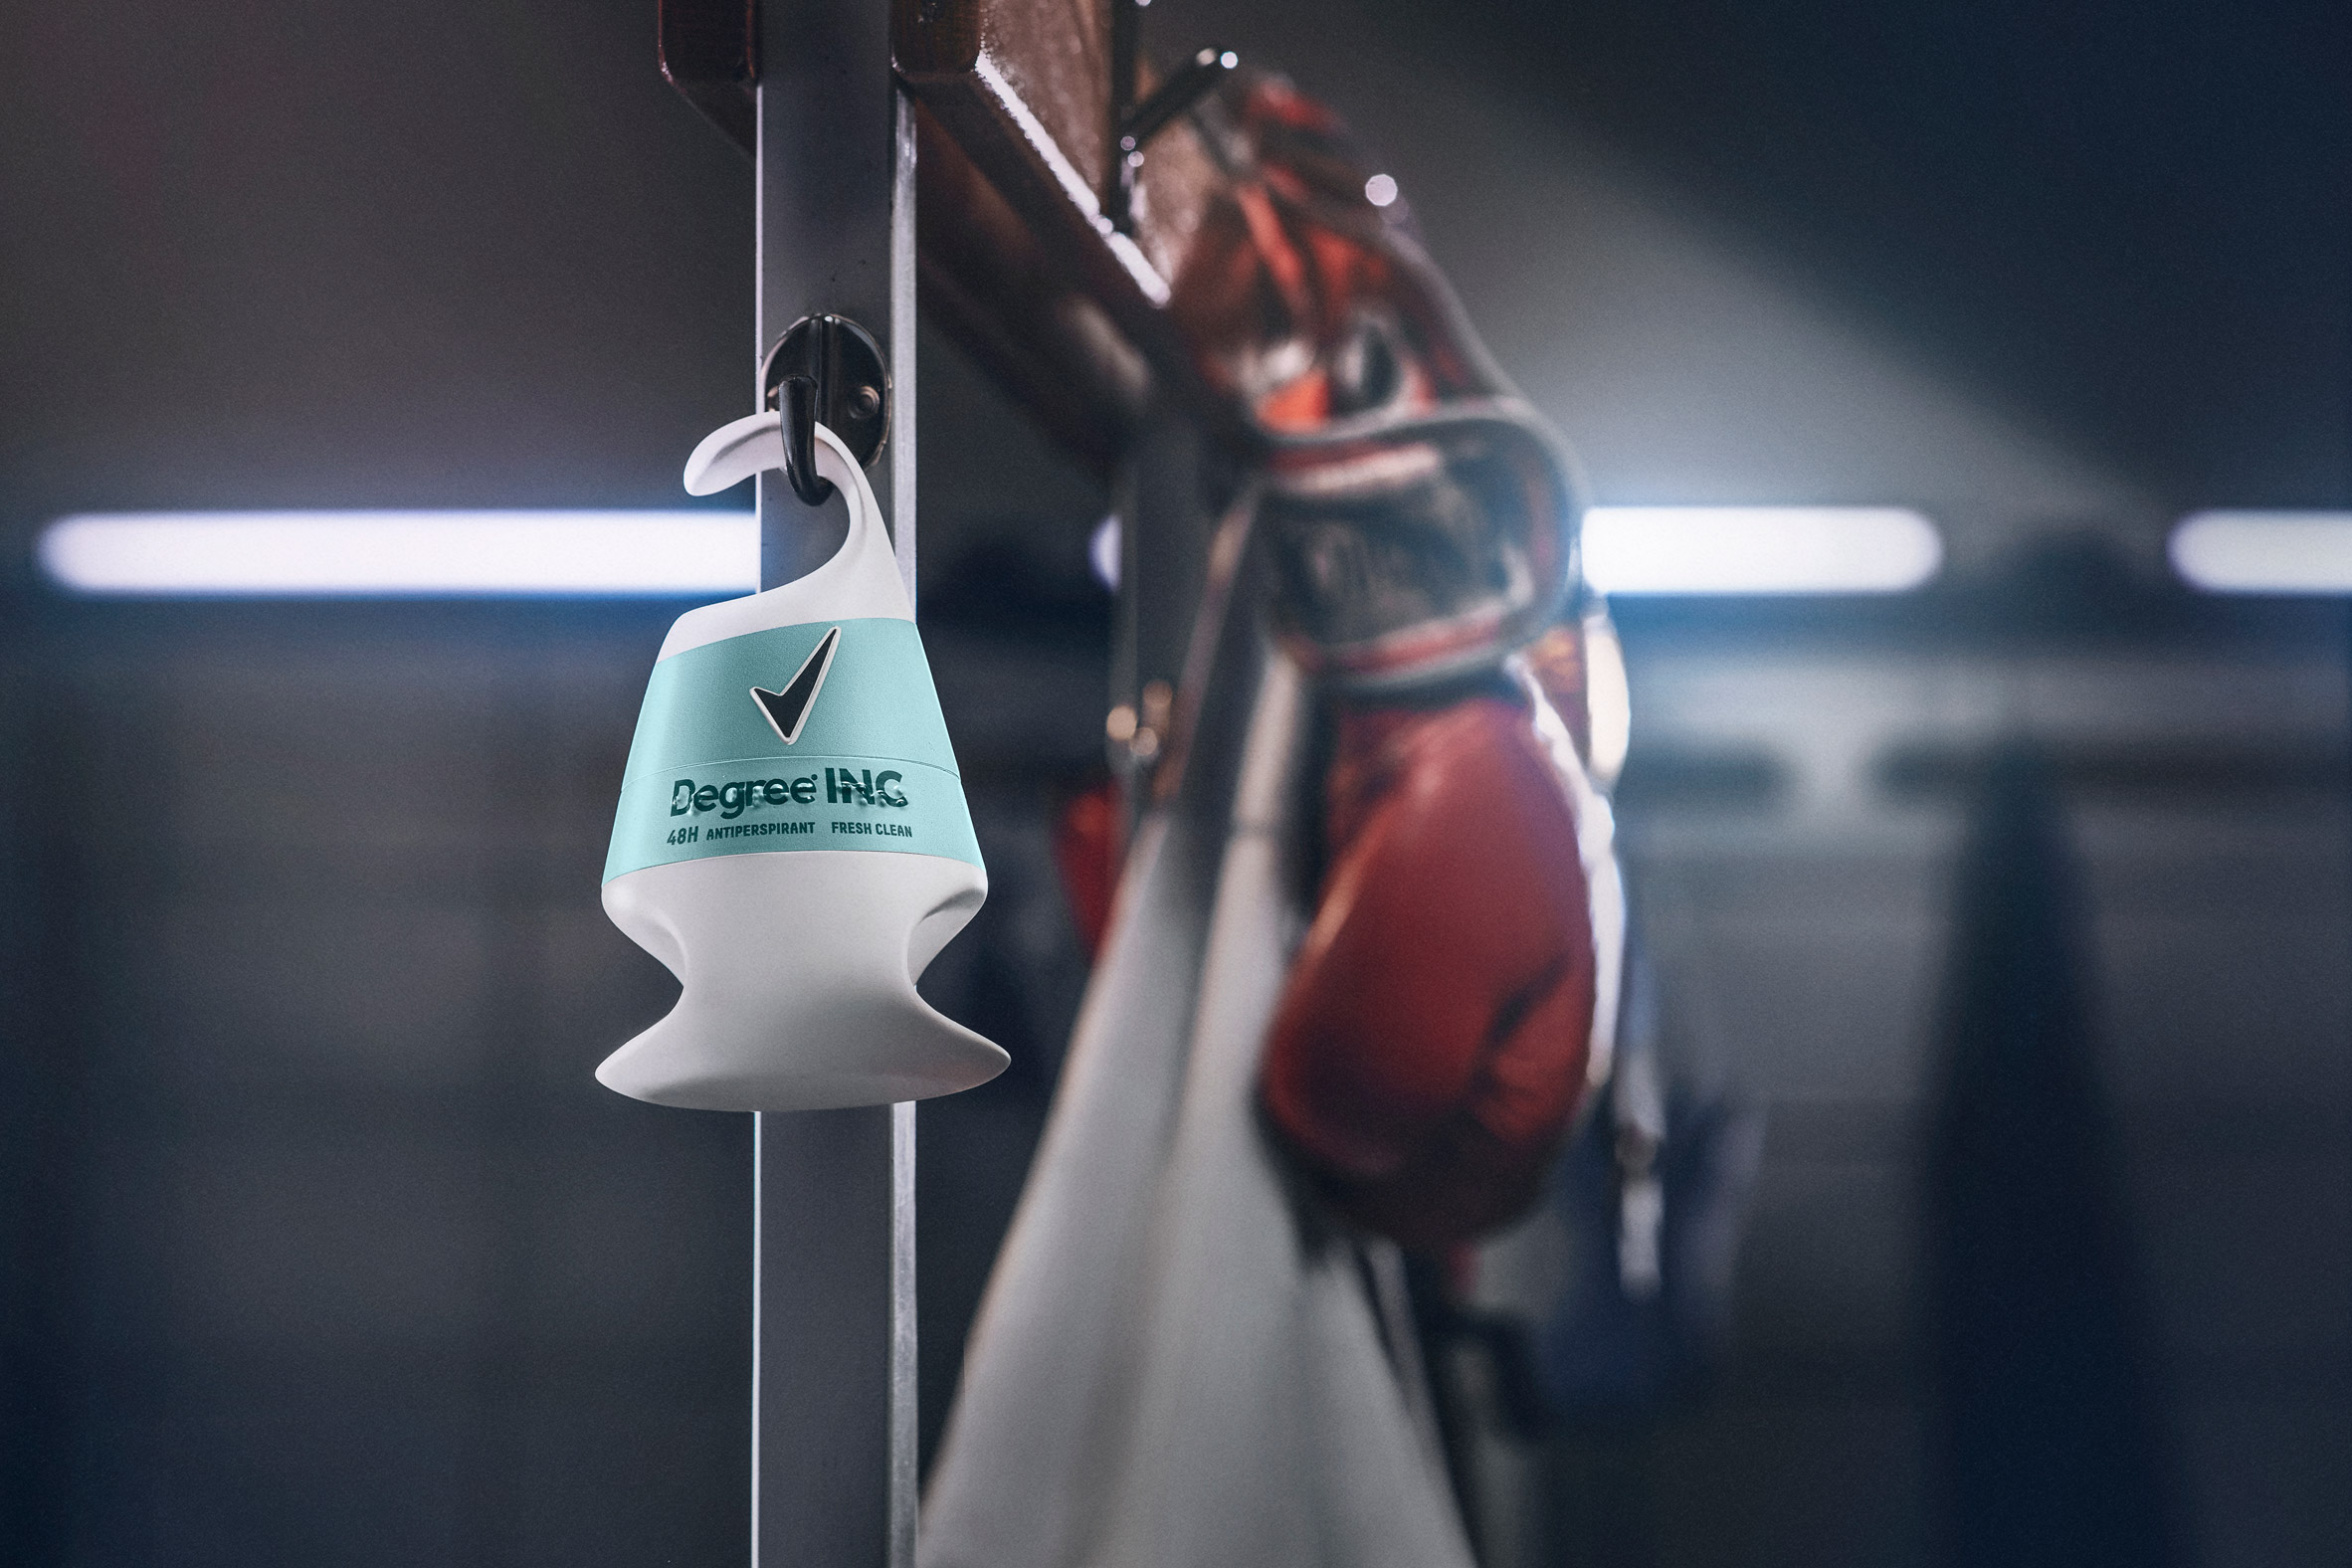 Deodorant packaging for people with disabilities by Unilever on a changing room hook